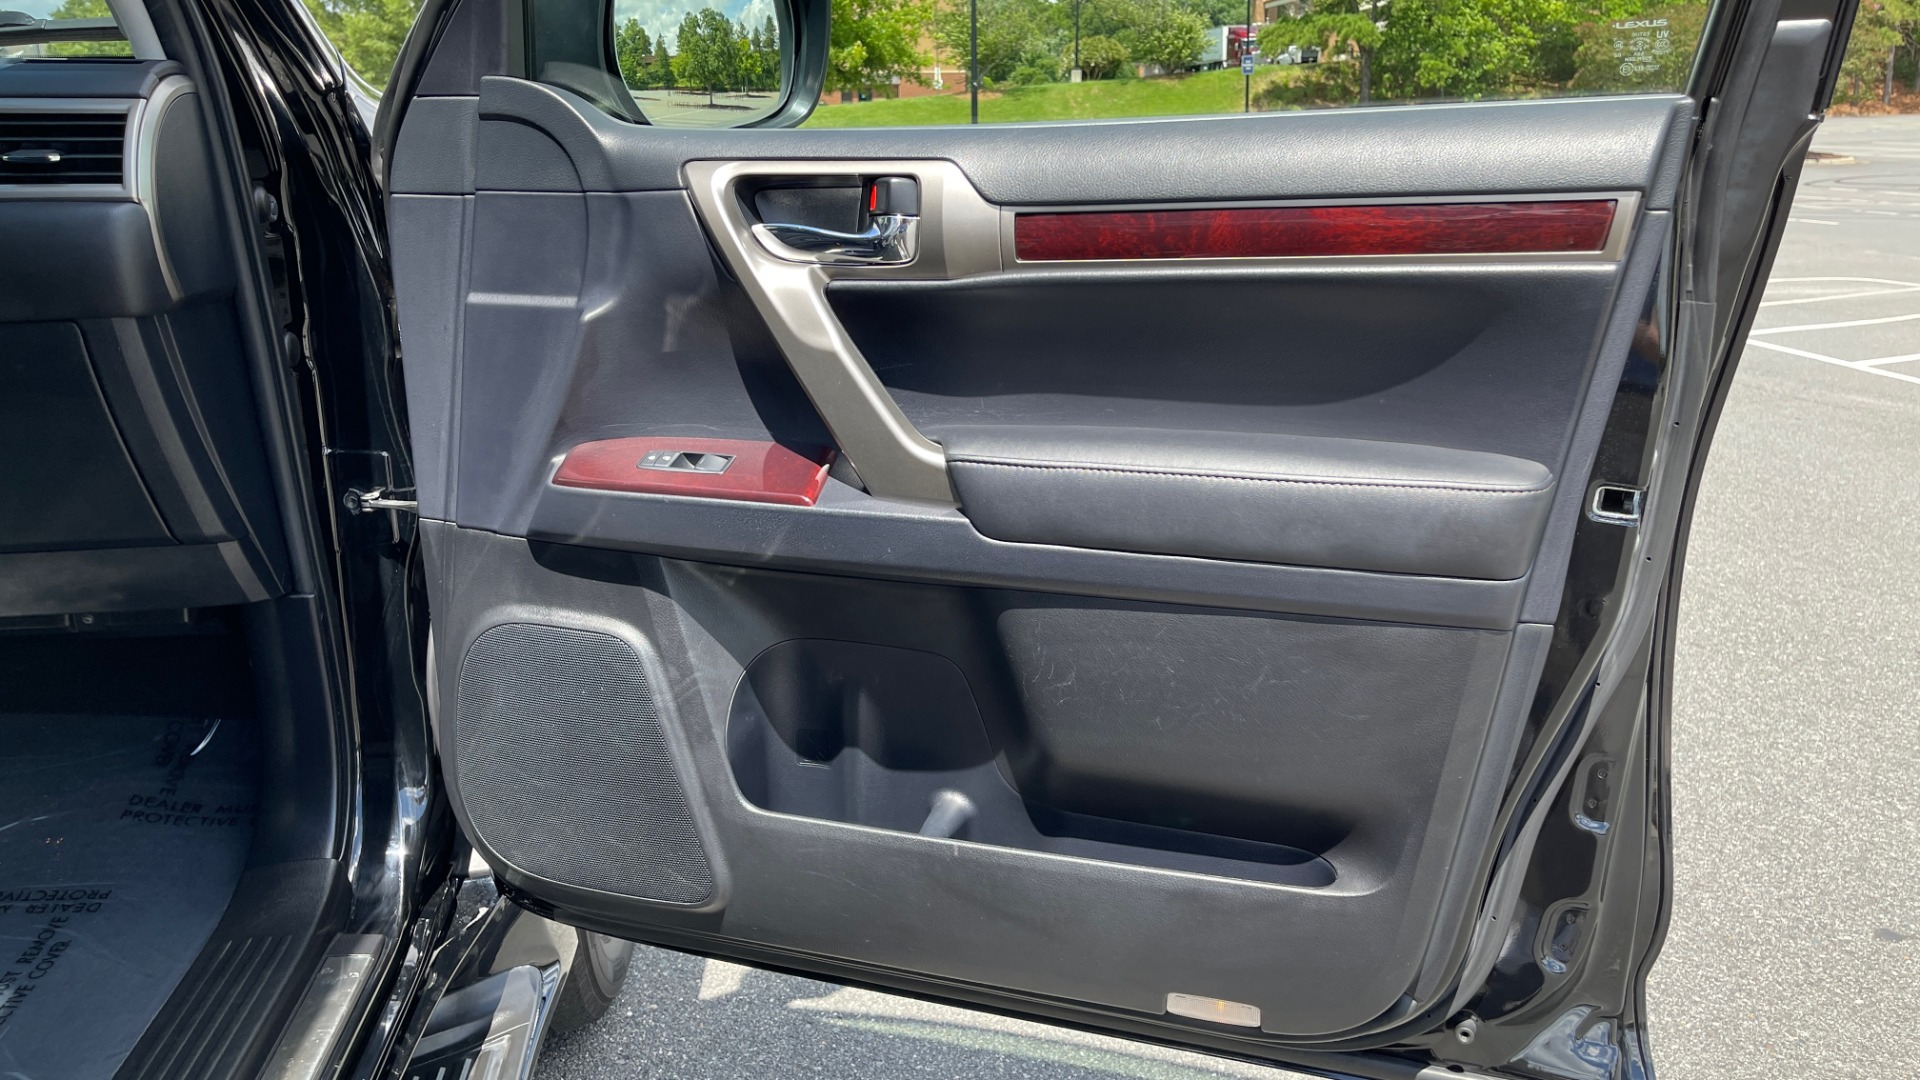 Used 2017 Lexus GX GX 460 LUXURY / AWD / NAV / SUNROOF / MARK LEV SND / REARVIEW for sale $37,995 at Formula Imports in Charlotte NC 28227 57